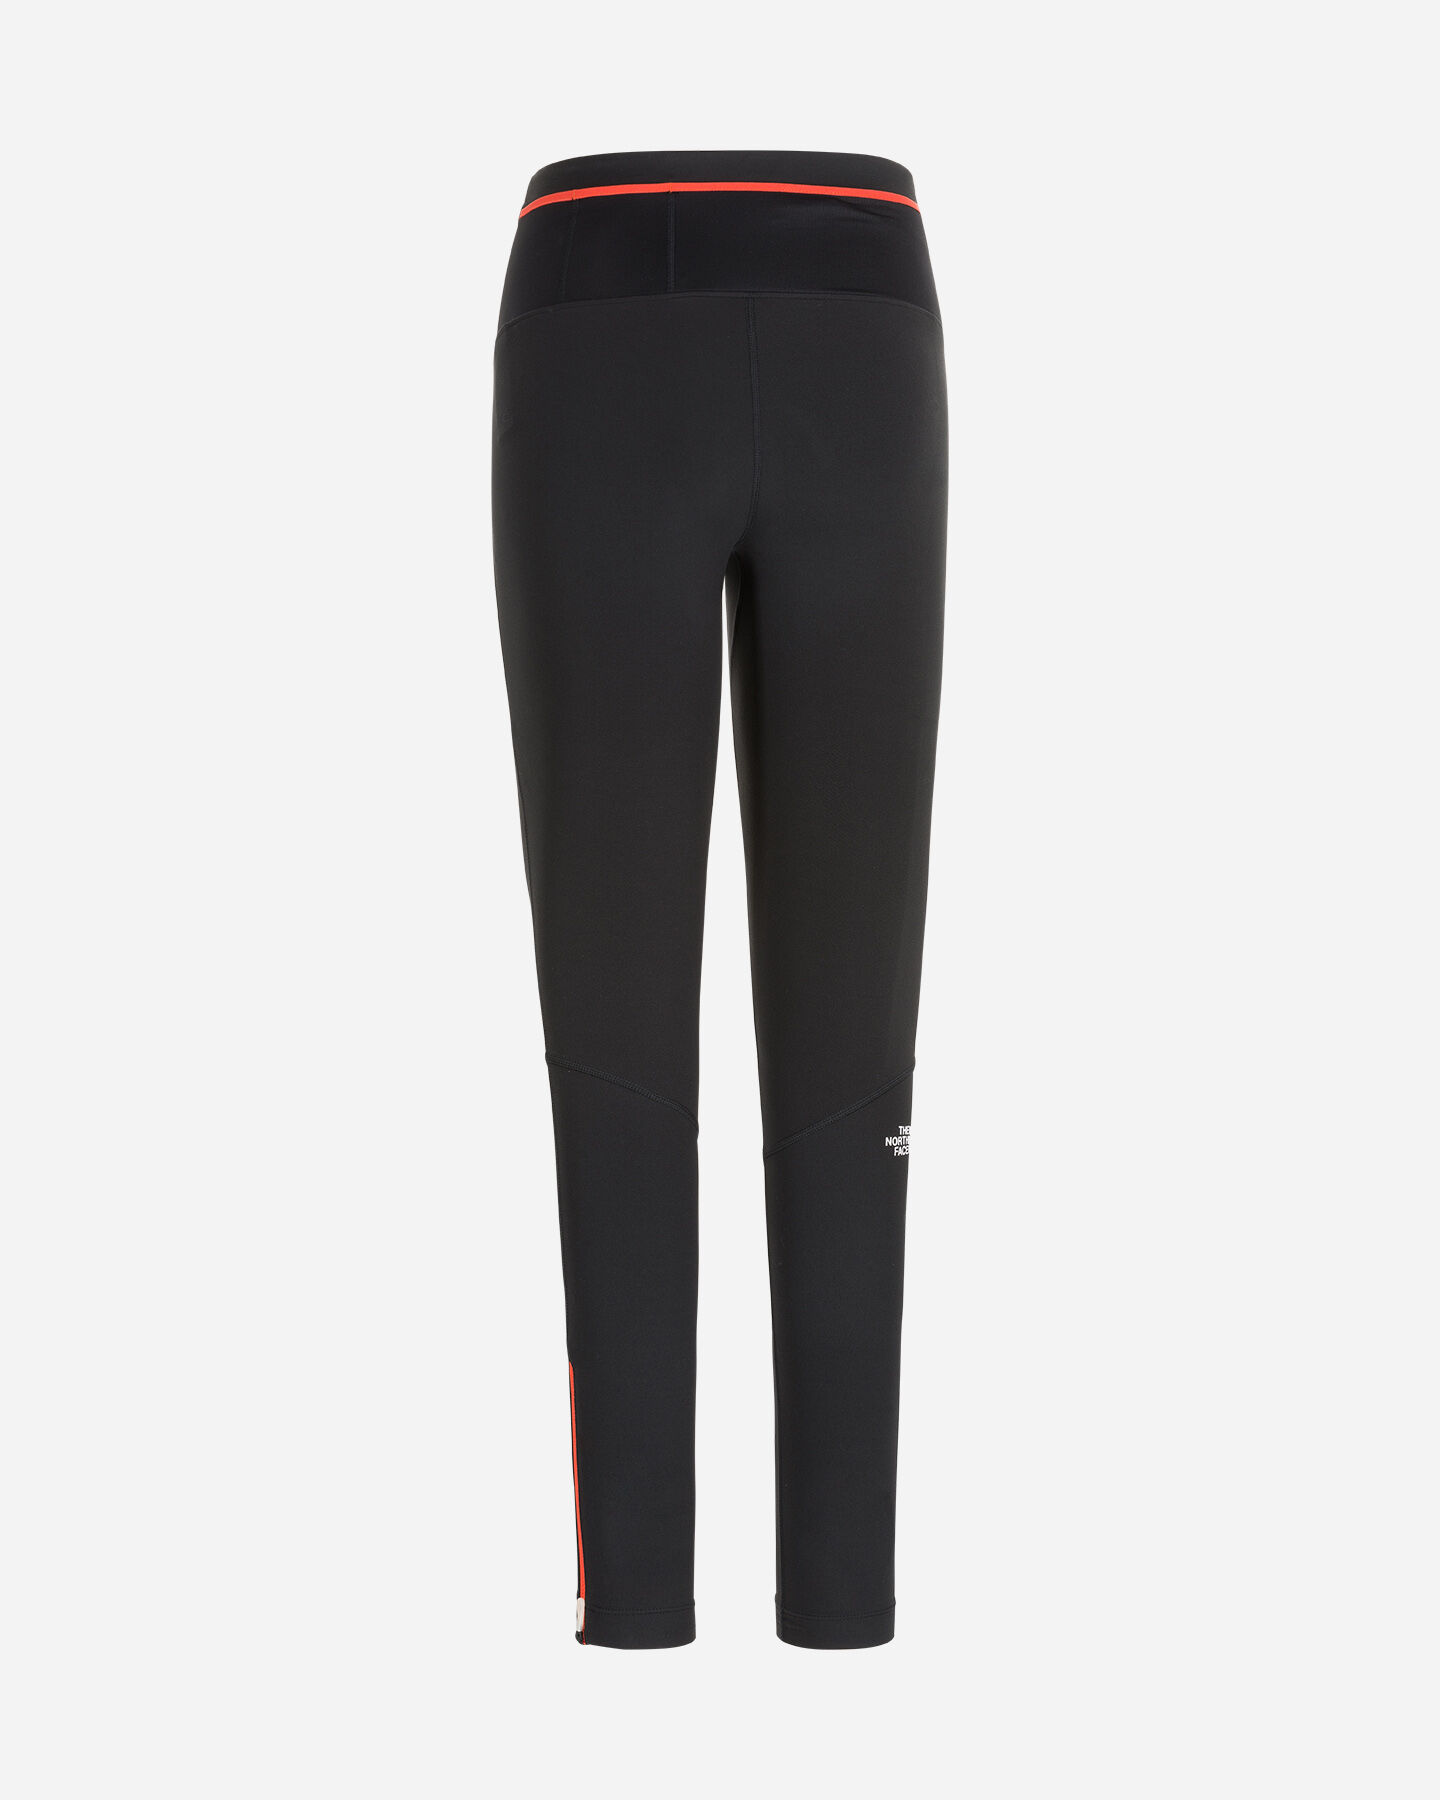 Pantalone outdoor THE NORTH FACE SPEEDTOUR TRAINING W S5243840 scatto 1